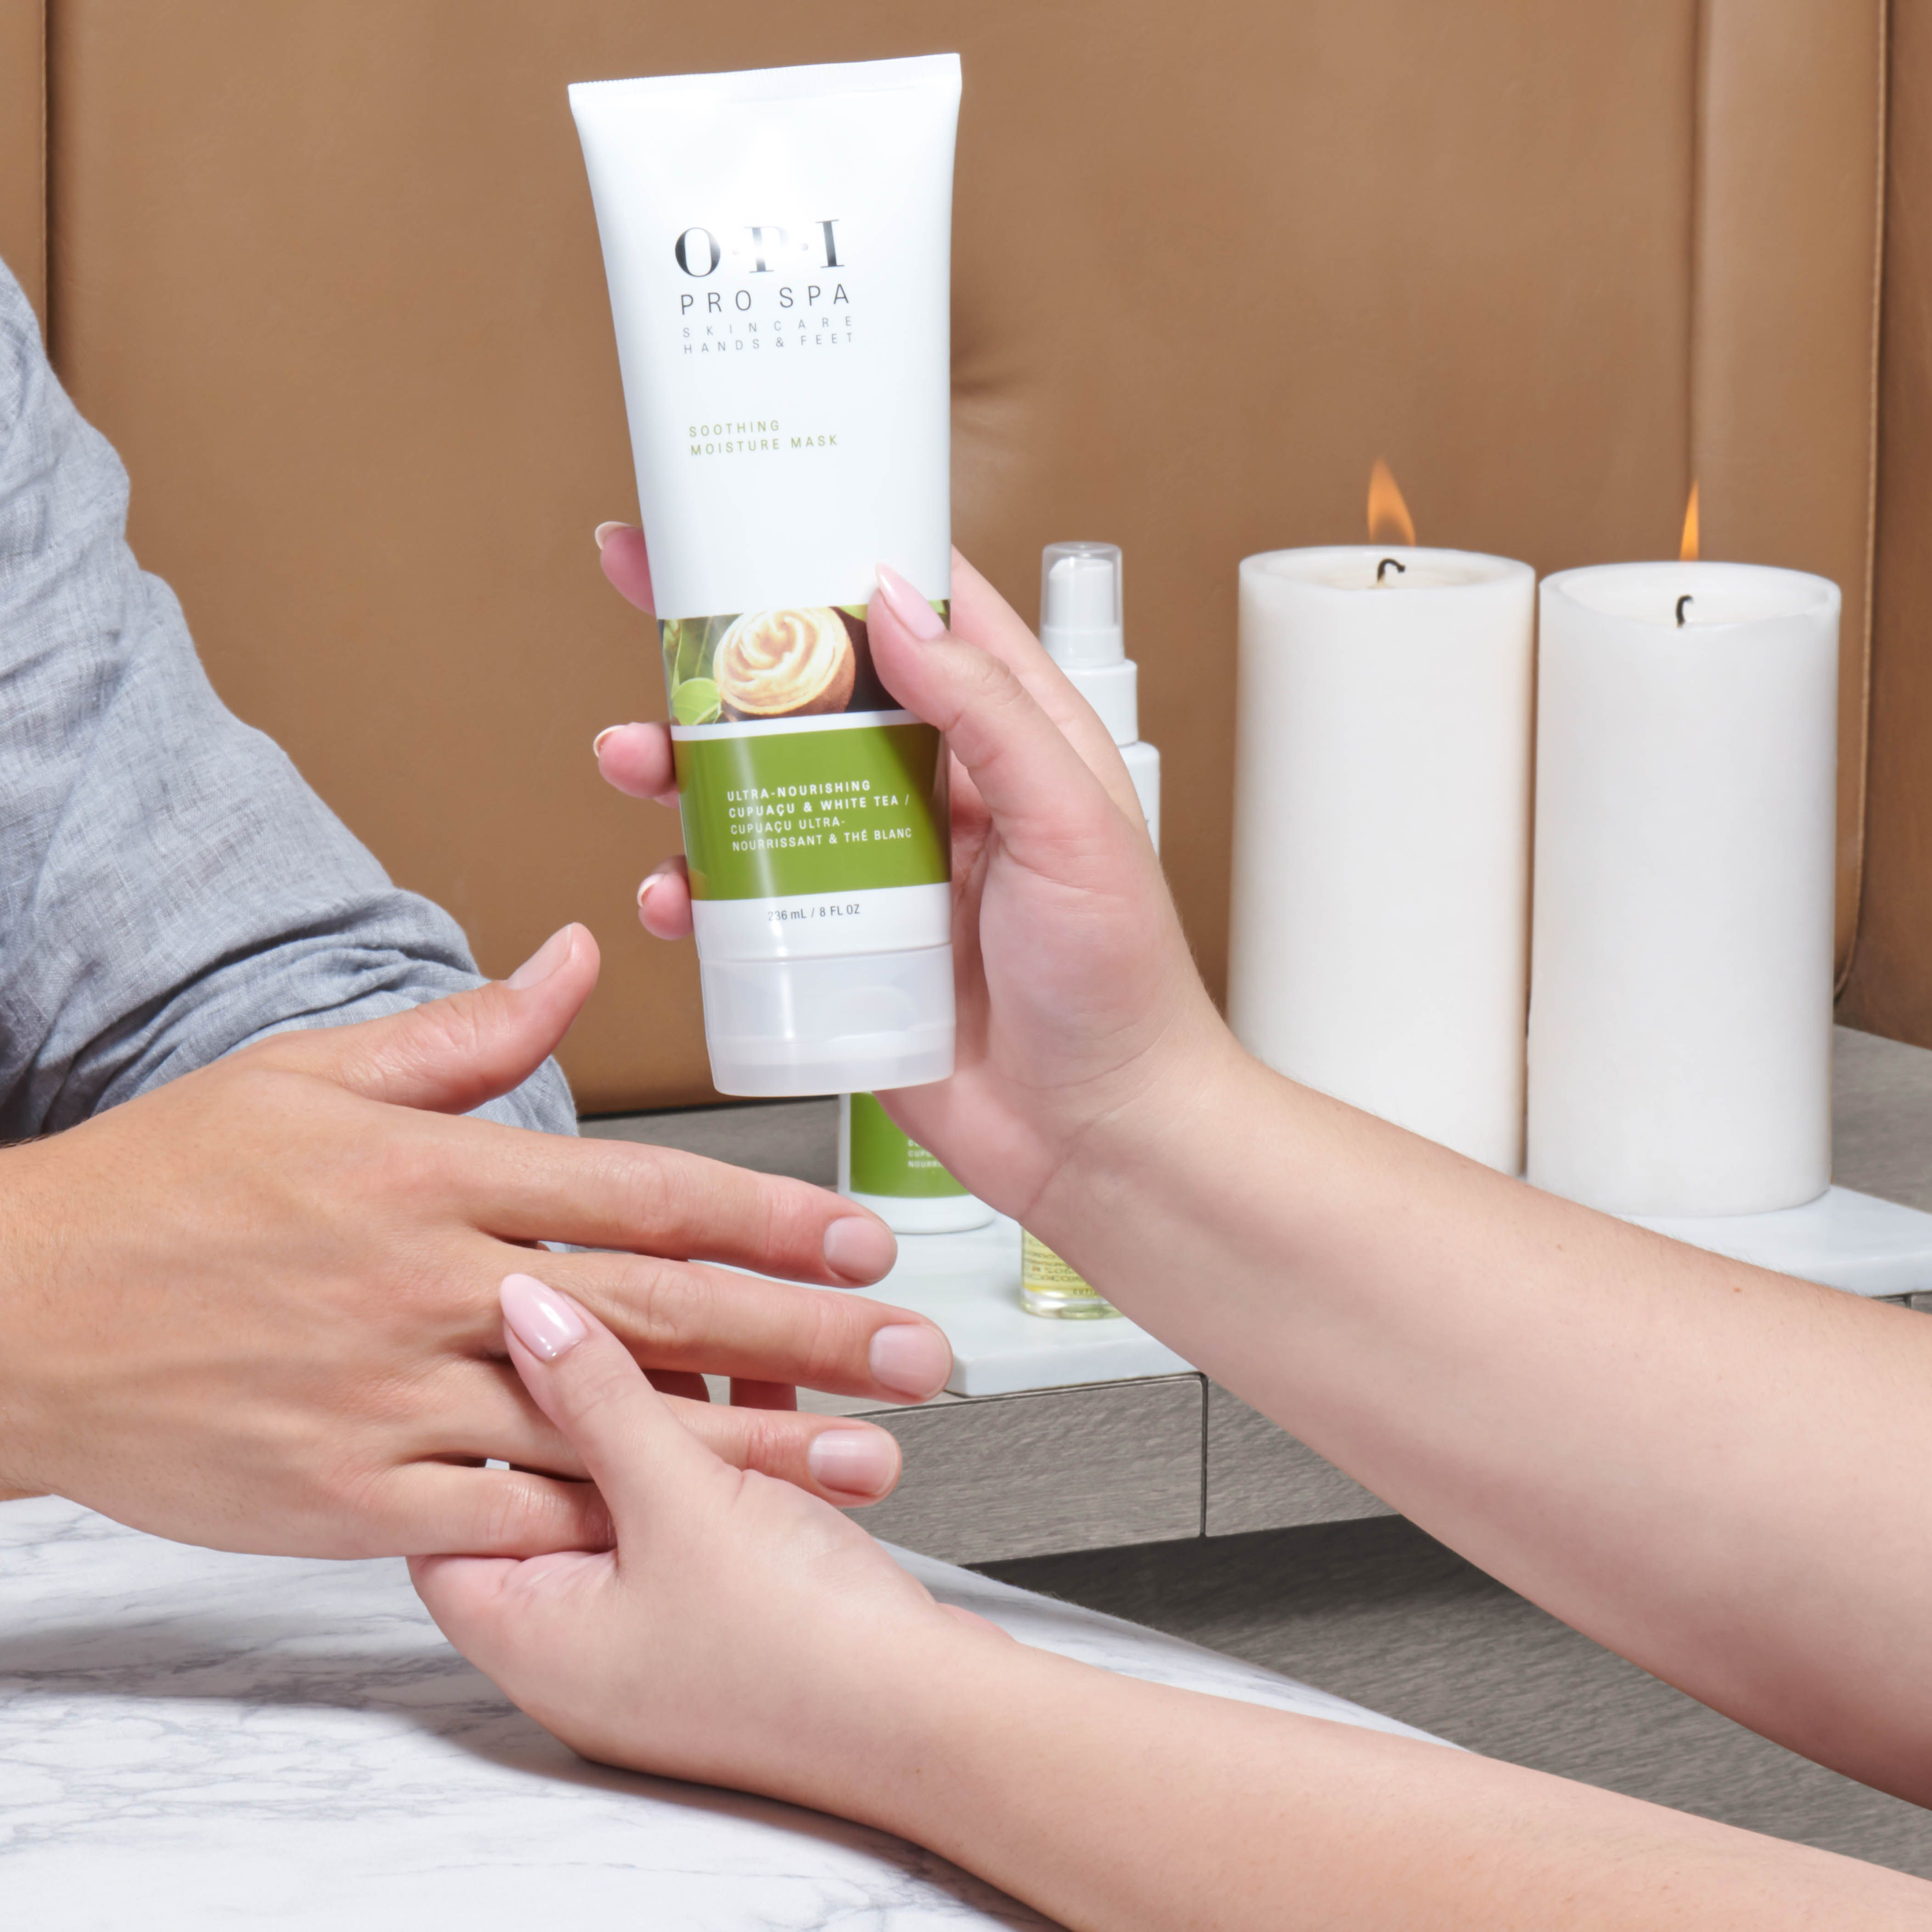 Maniup And Make Sure You Always Ask For The Opiprospa Soothing Moisture Mask To Get The Most Out Of Every Manicure Serv Moisturizer Spa Manicure Skin So Soft